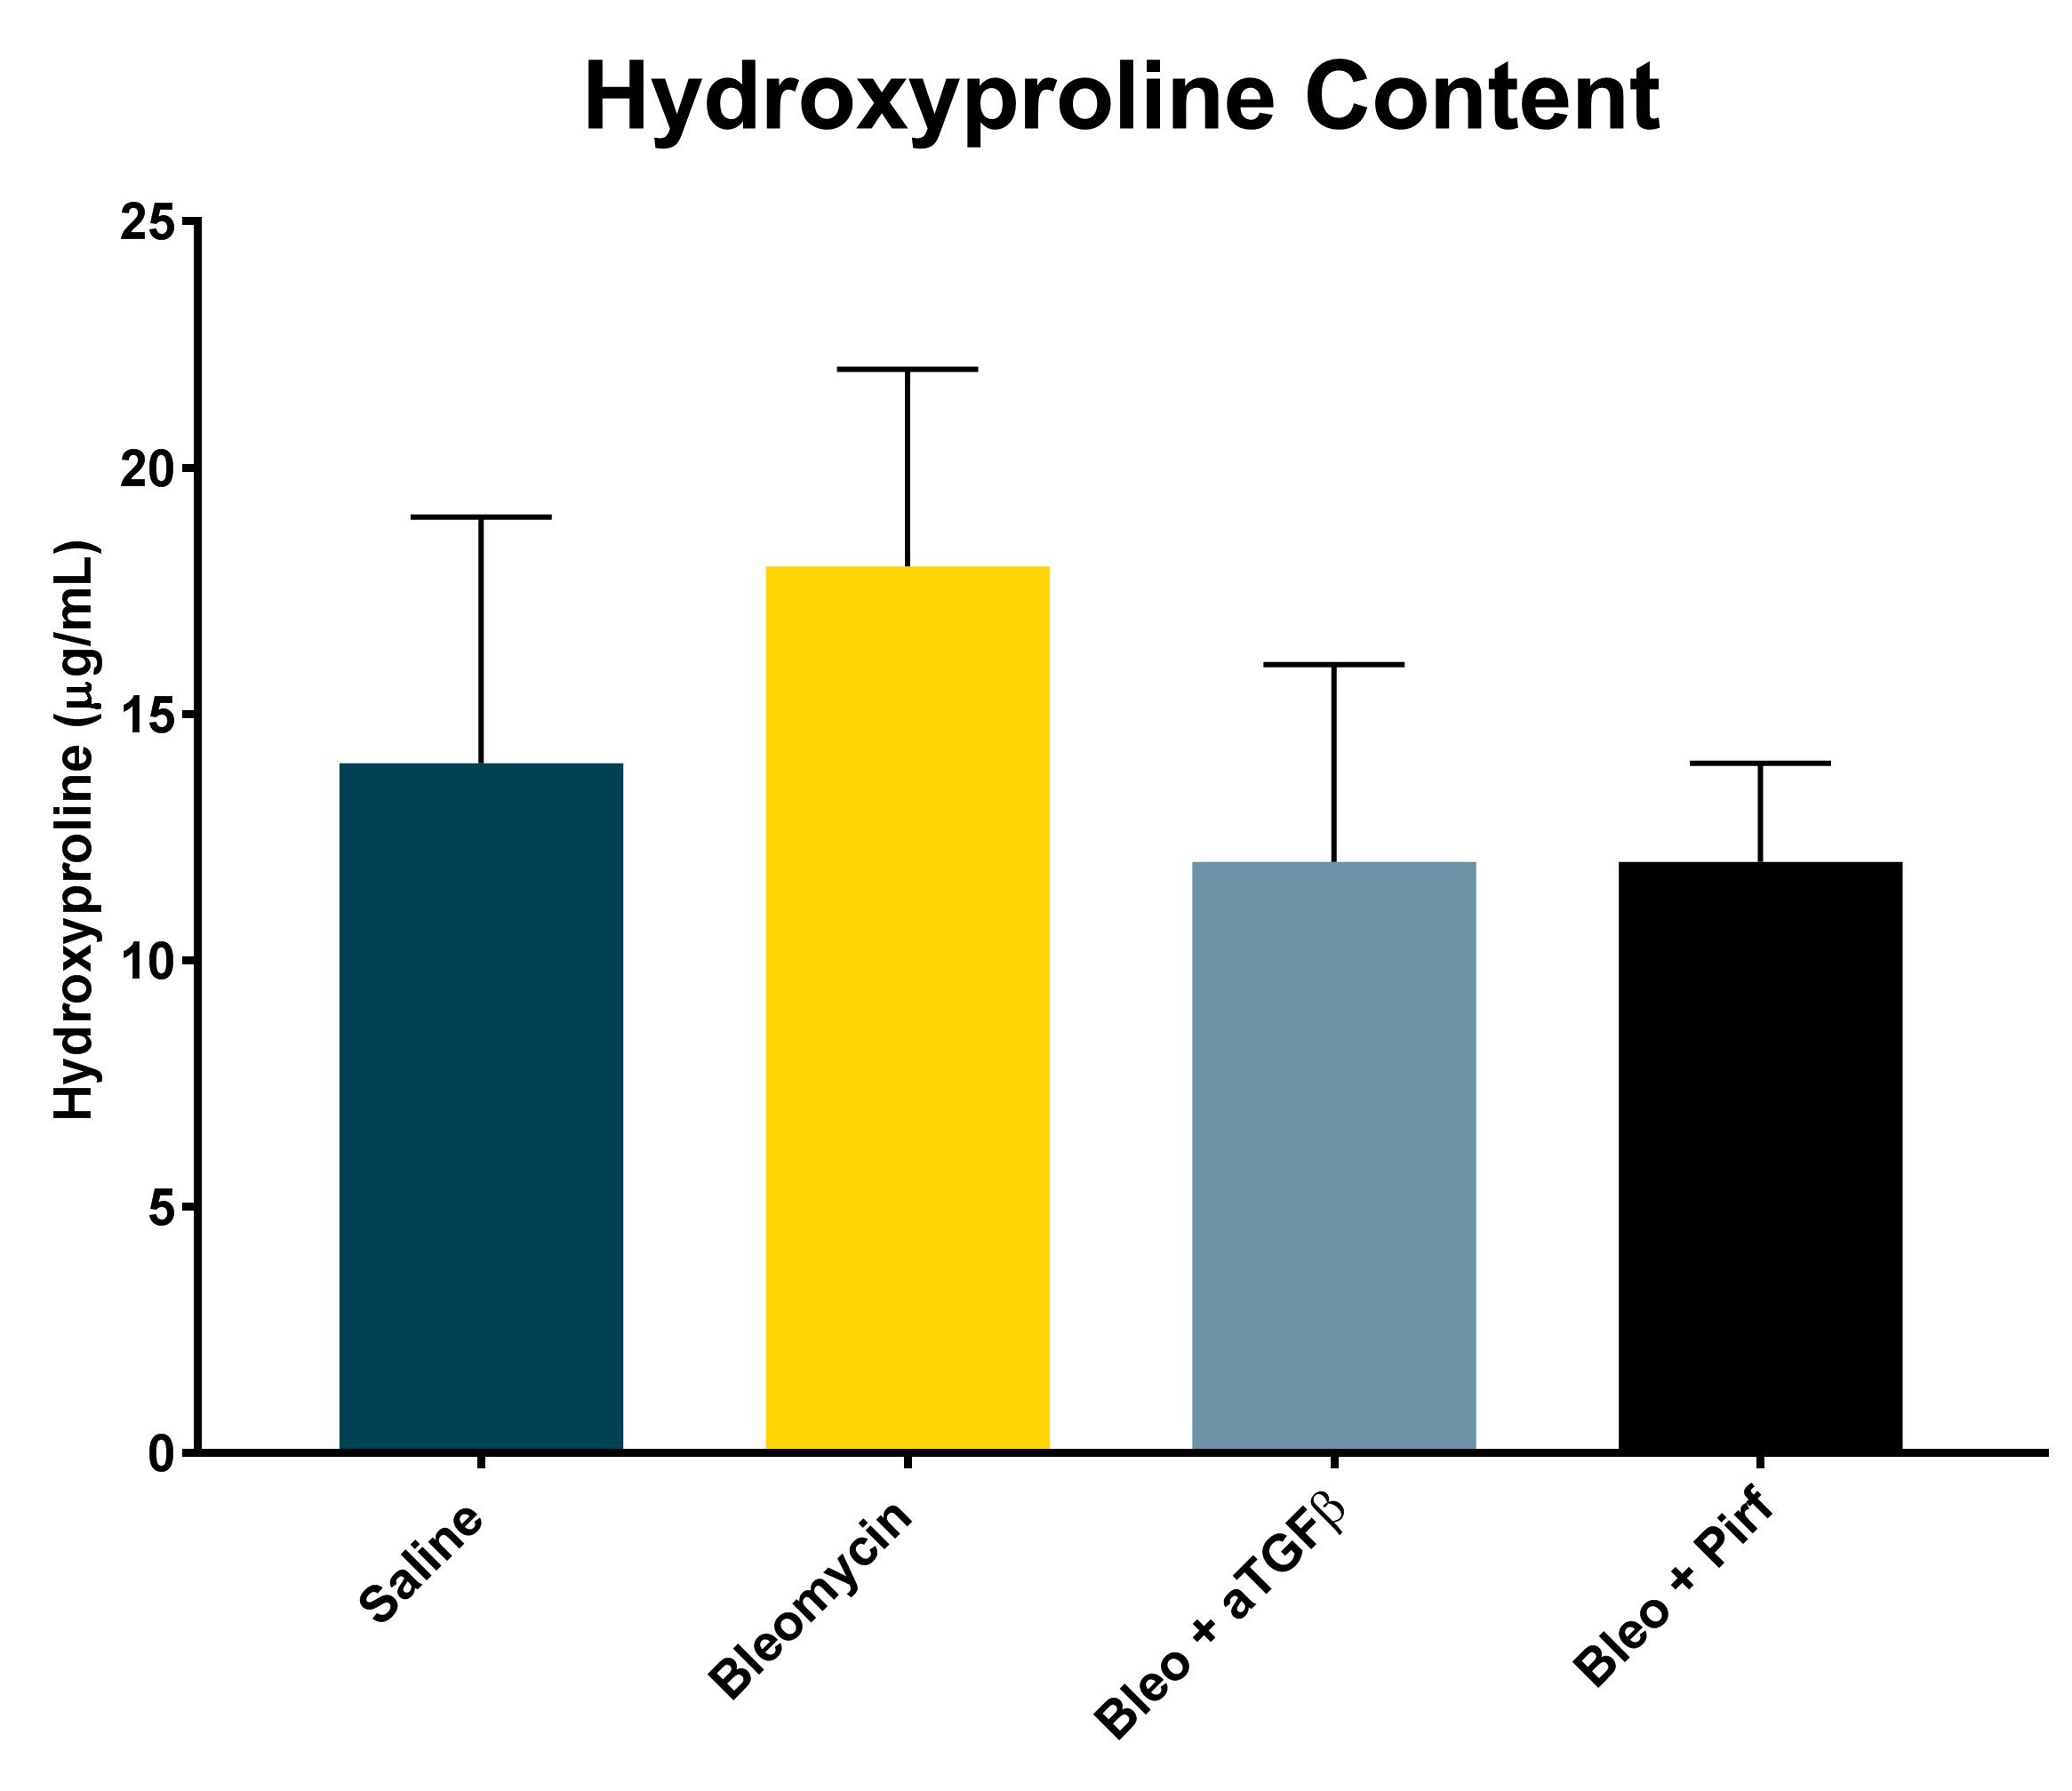 Hydroxyproline Assay:  Human normal lung fibroblasts were treated as indicated above for 48 hours. Data represent the amount of hydroxyproline generated by the cells resulting from treatment as an indicator of the development of fibrosis.